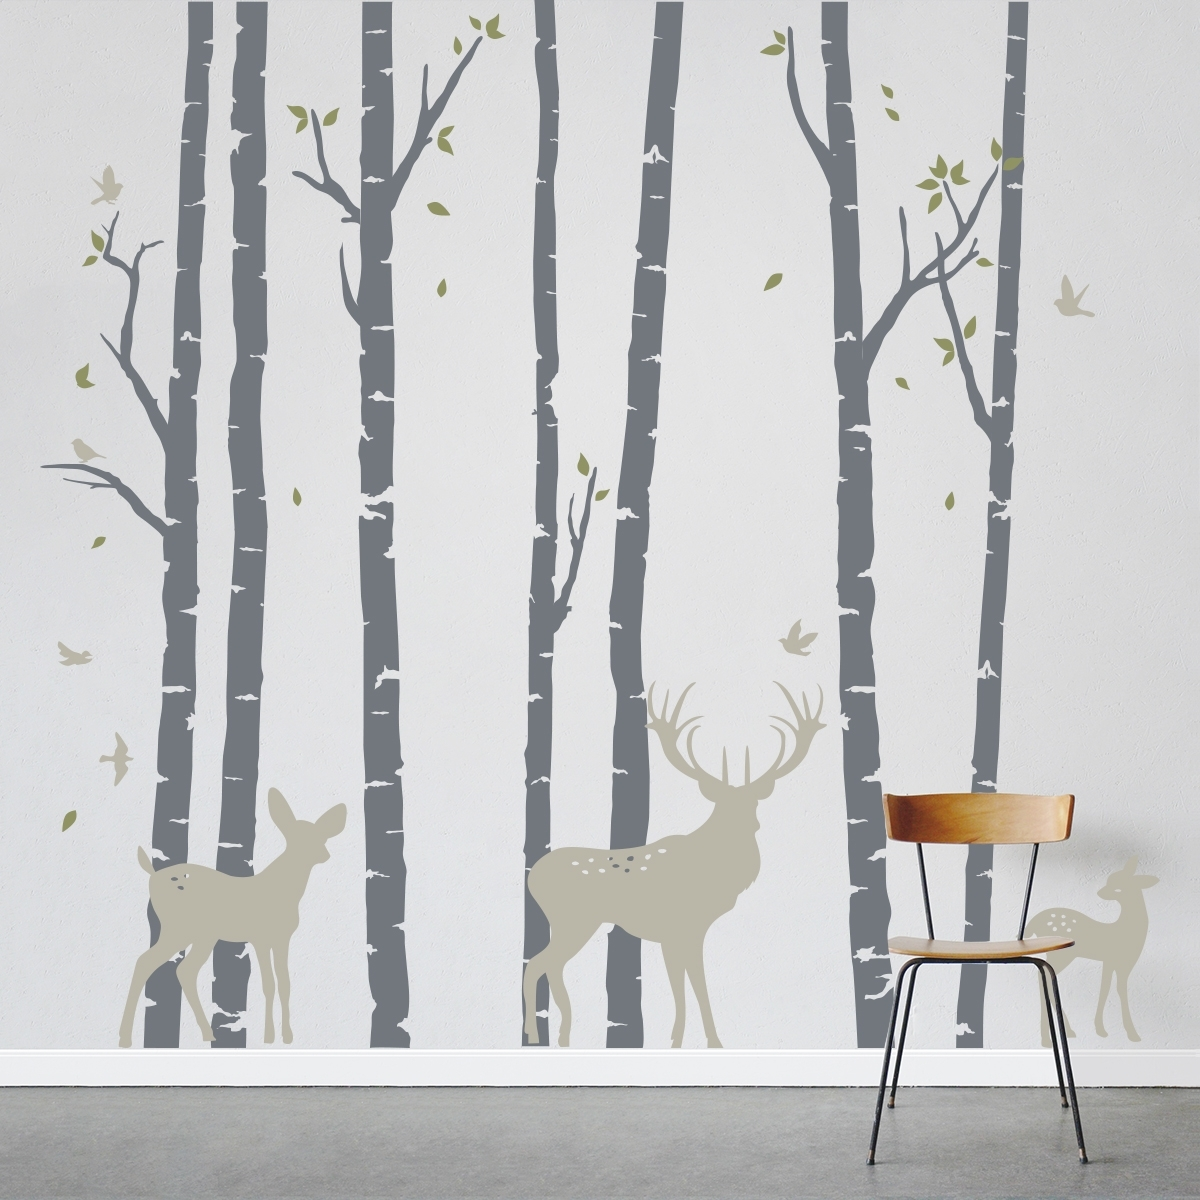 Most Current Birch Tree Wall Art For Birch Trees Forest With Fresh Birch Tree Wall Decal – Wall (Gallery 8 of 20)